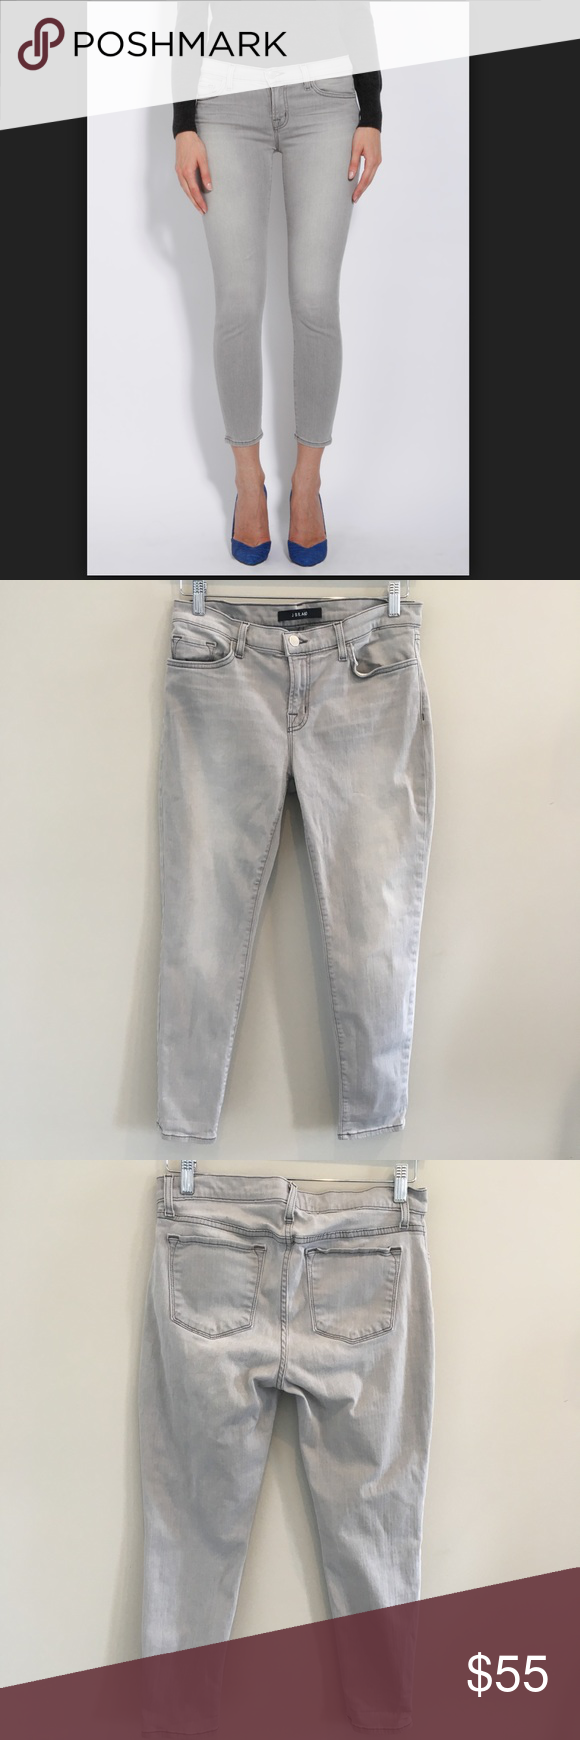 J  Brand Gray Wash Skinny Jeans SIZE 30 MEASUREMENTS Overall